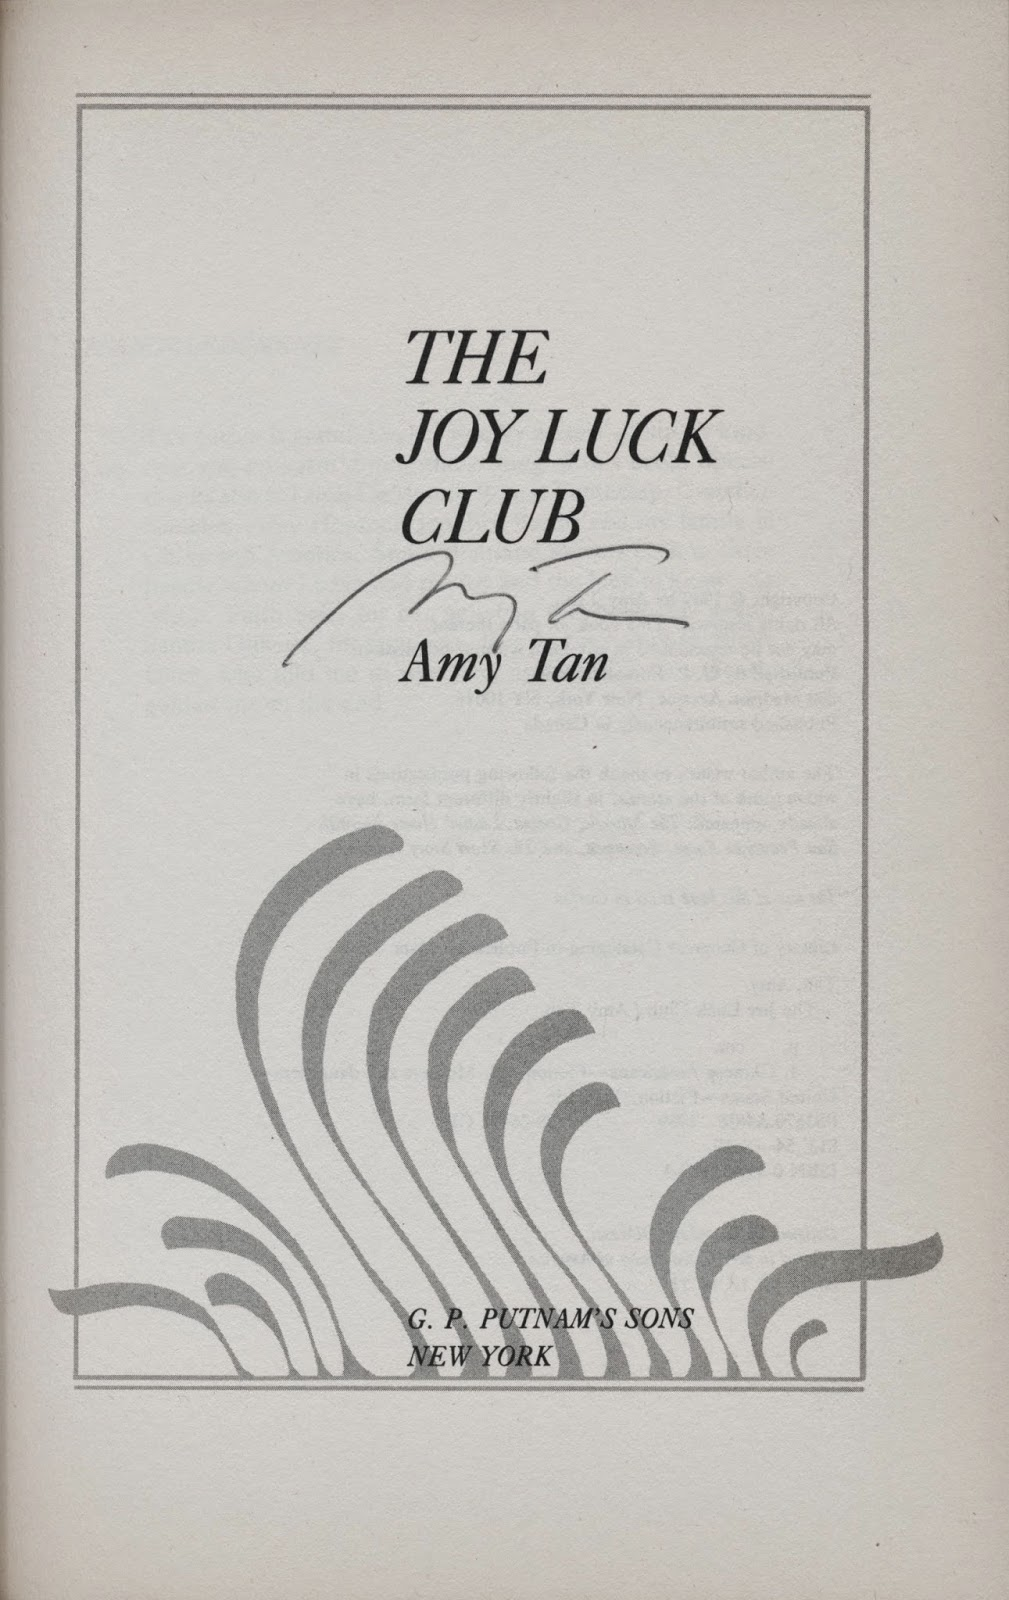 amy tan the joy luck club Amy tan reads the opening pages of her novel the joy luck club chapter one first chapter 1.